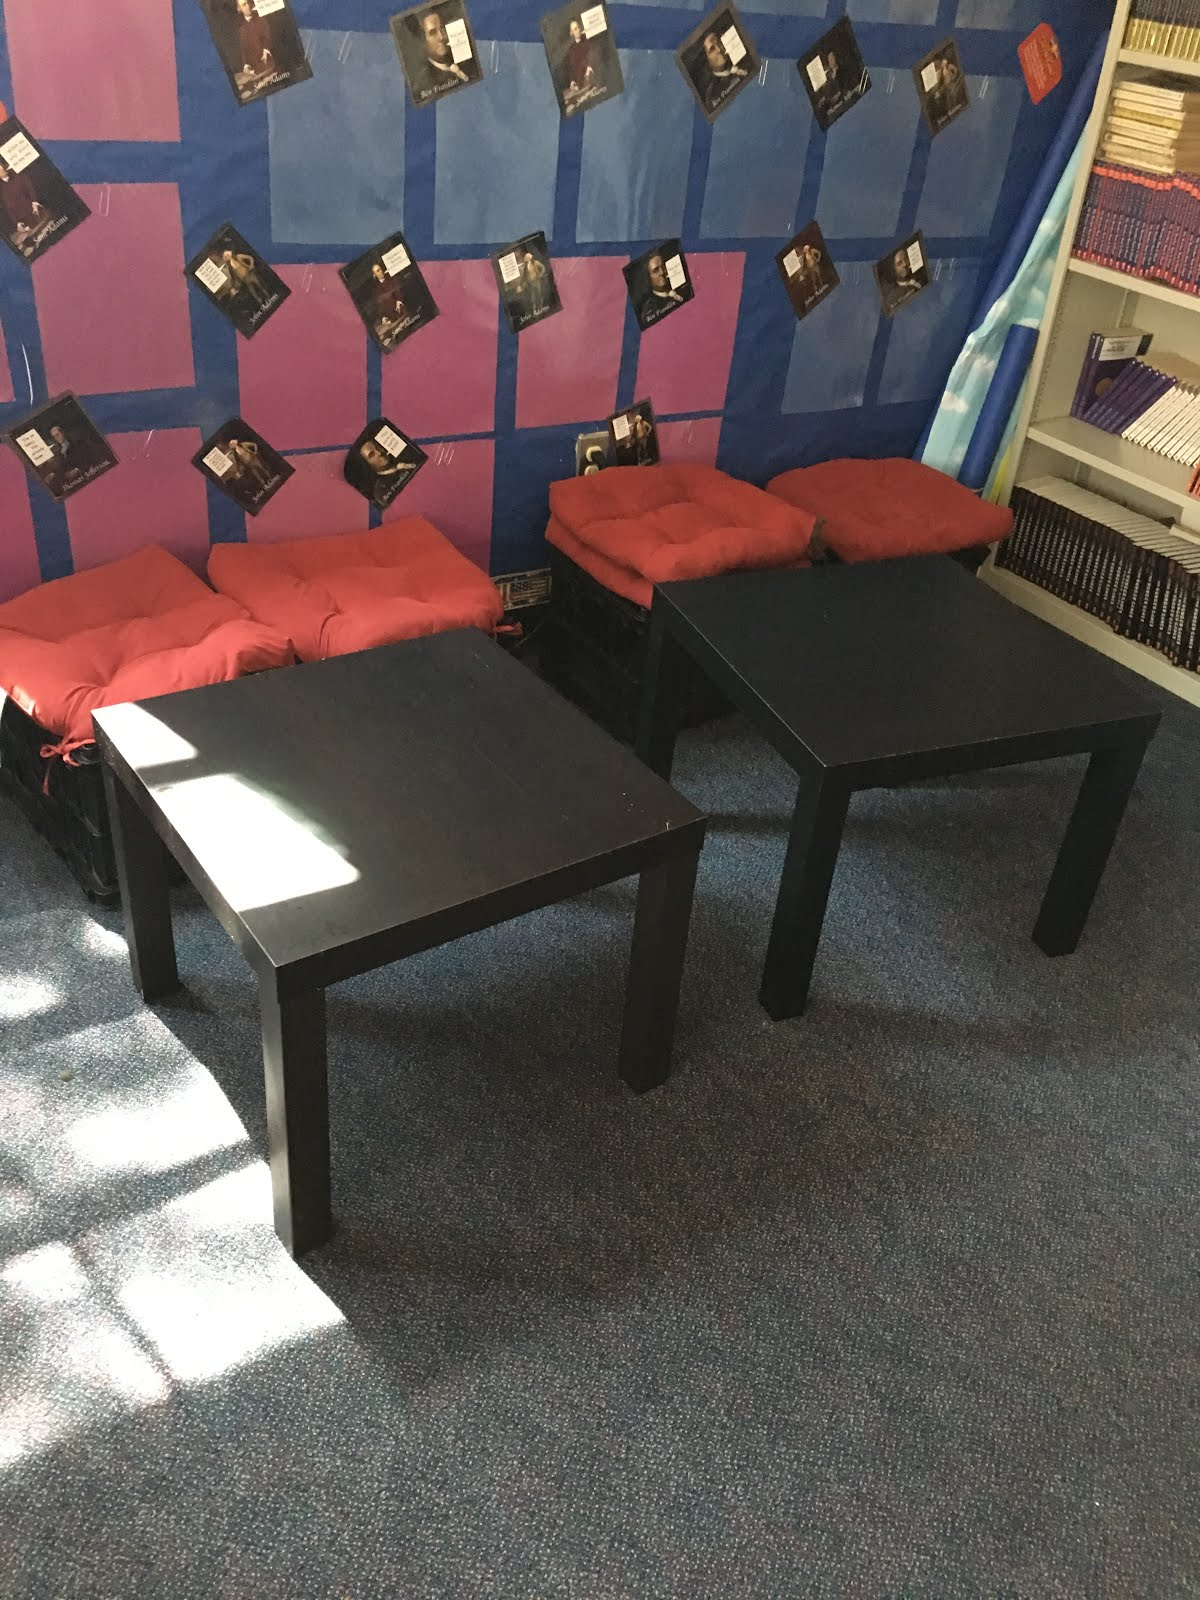 ikea kids table and chairs oversized pillow chair middle school mob: flexible seating in